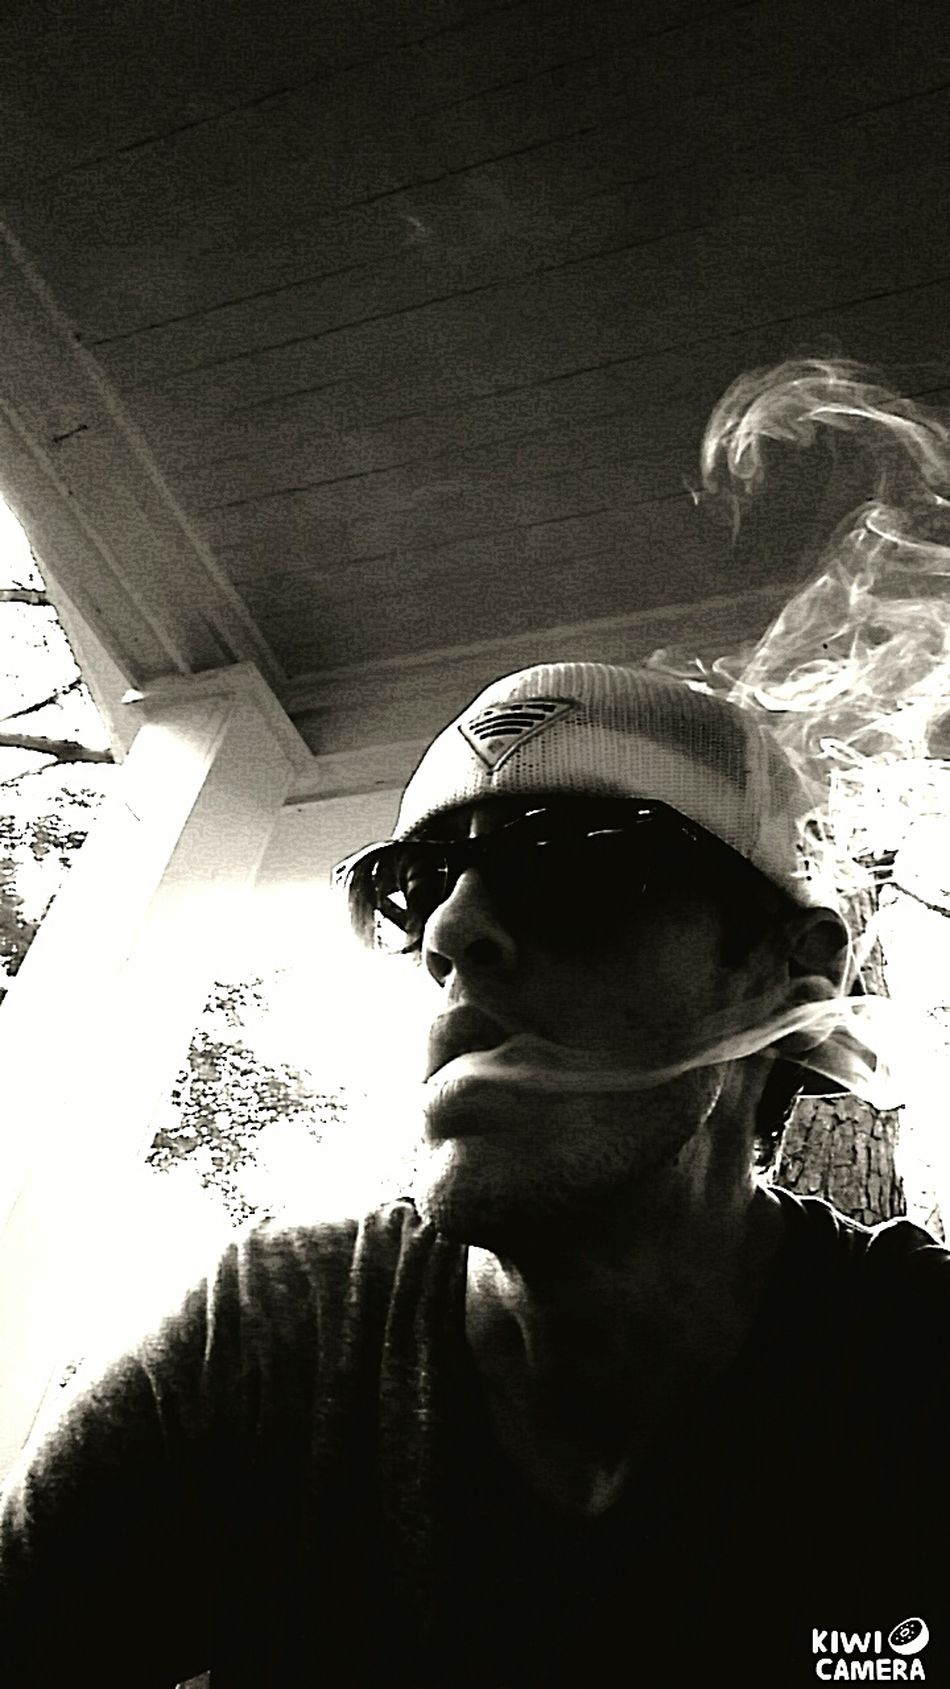 Relaxing 420 Smoker 420 Weed Life Blazing Smokeweedeveryday Abstract Mafia Studio Blackandwhite 420life